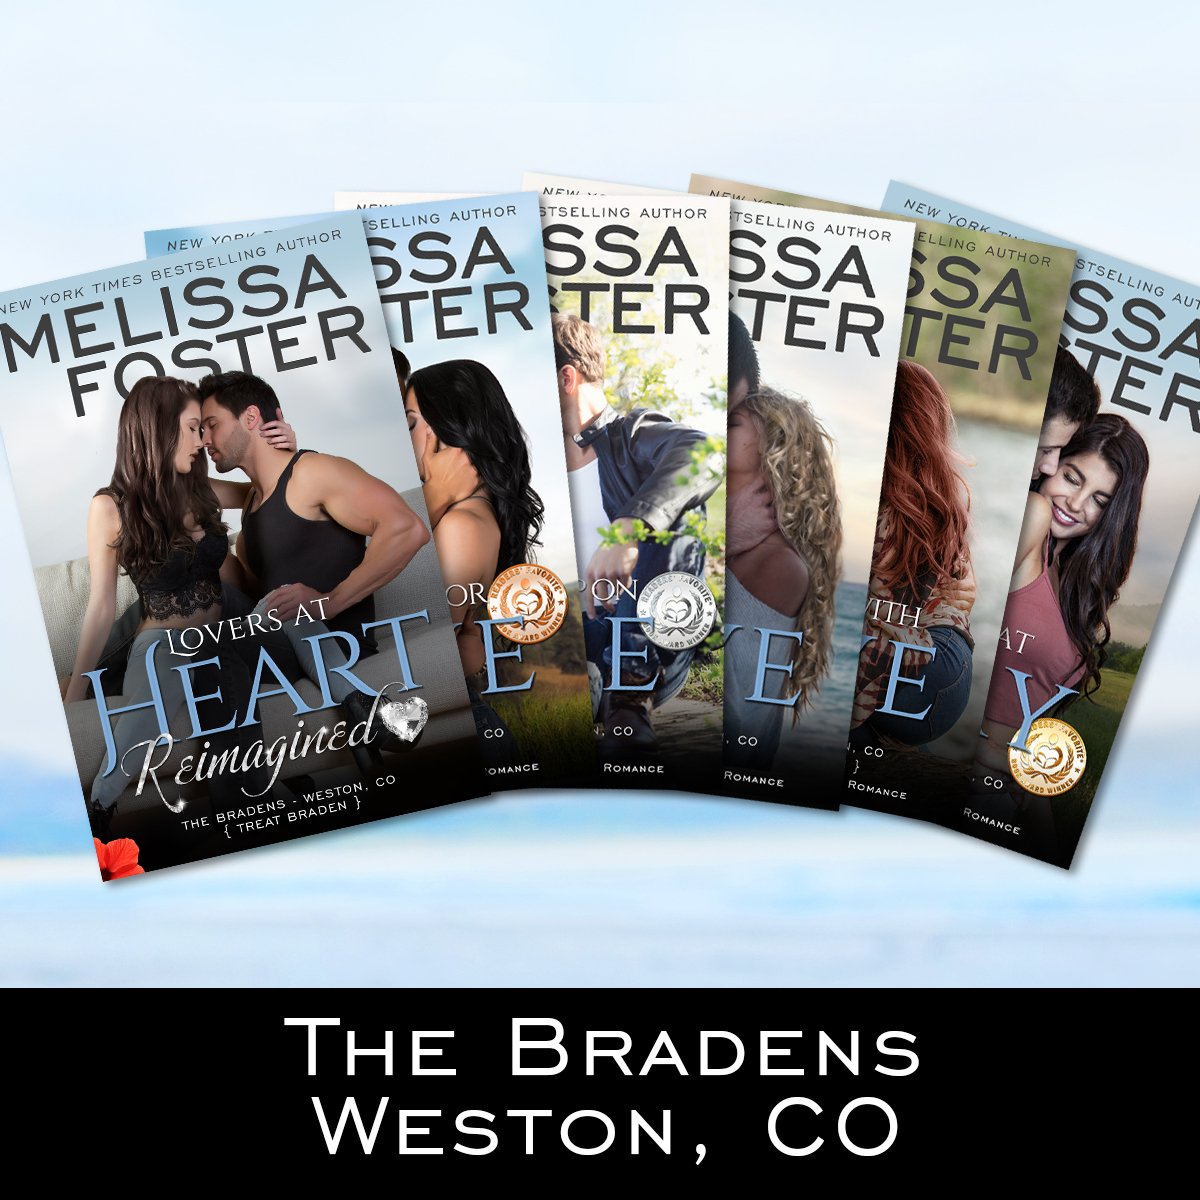 The Bradens at Weston, CO Series of books by Melissa Foster